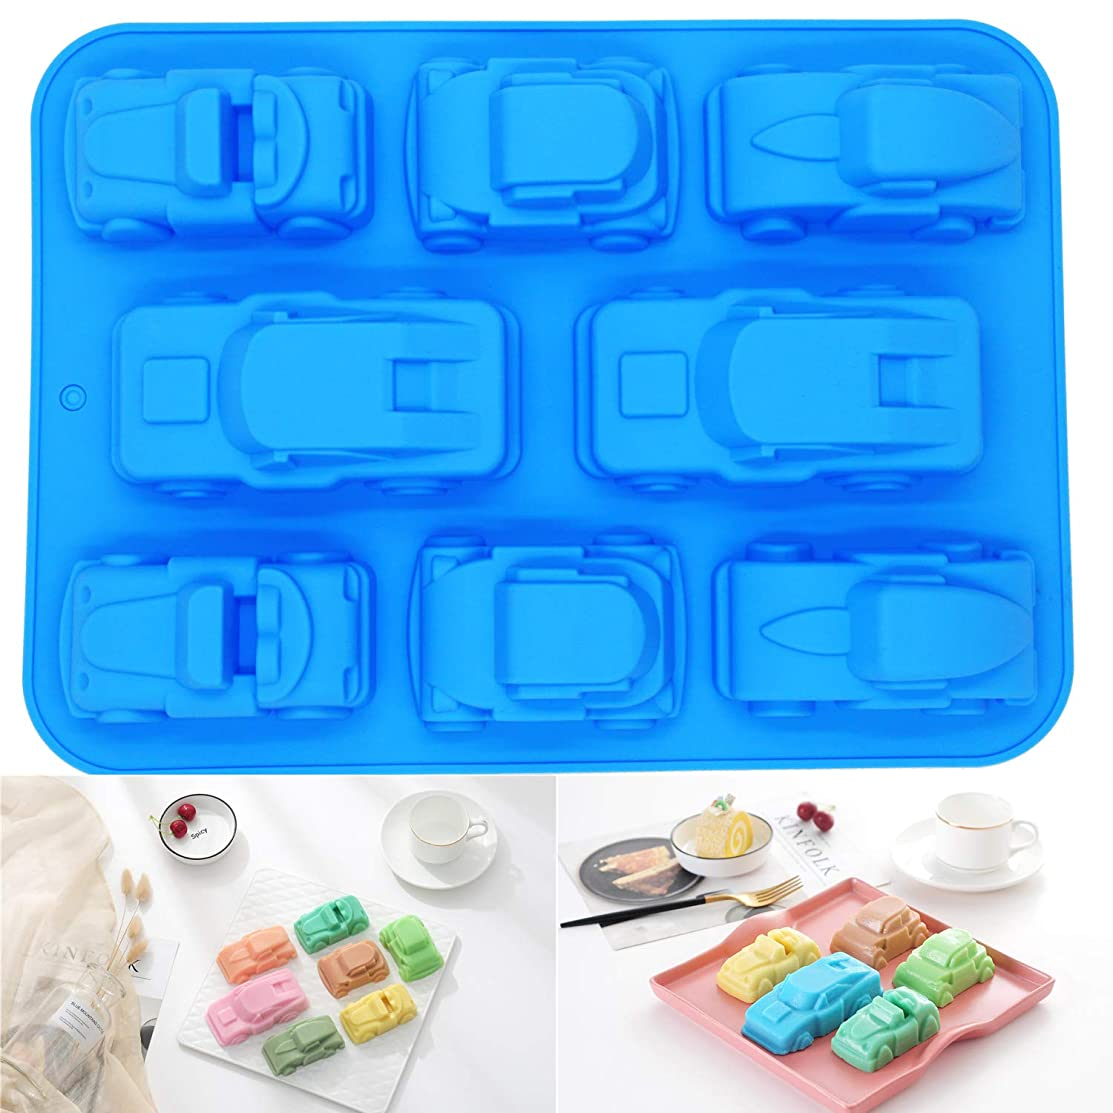 PONECA Silicone Molds Soap Molds 8 Cavity House &Car Shape Cake?DIY for Homemade Cake? Soap Jelly Pudding Chocolate Baking molds (Car Shape)